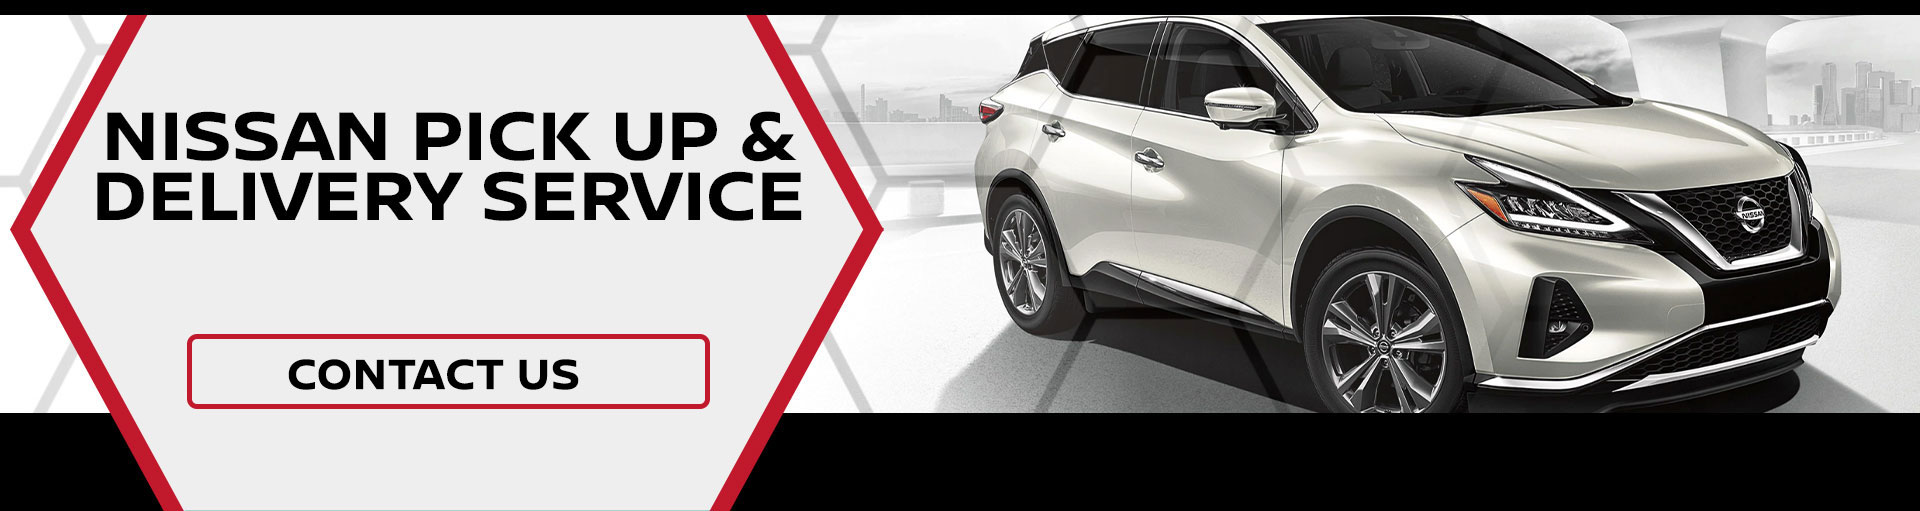 Russ Darrow Nissan of West Bend Pick Up & Delivery Service